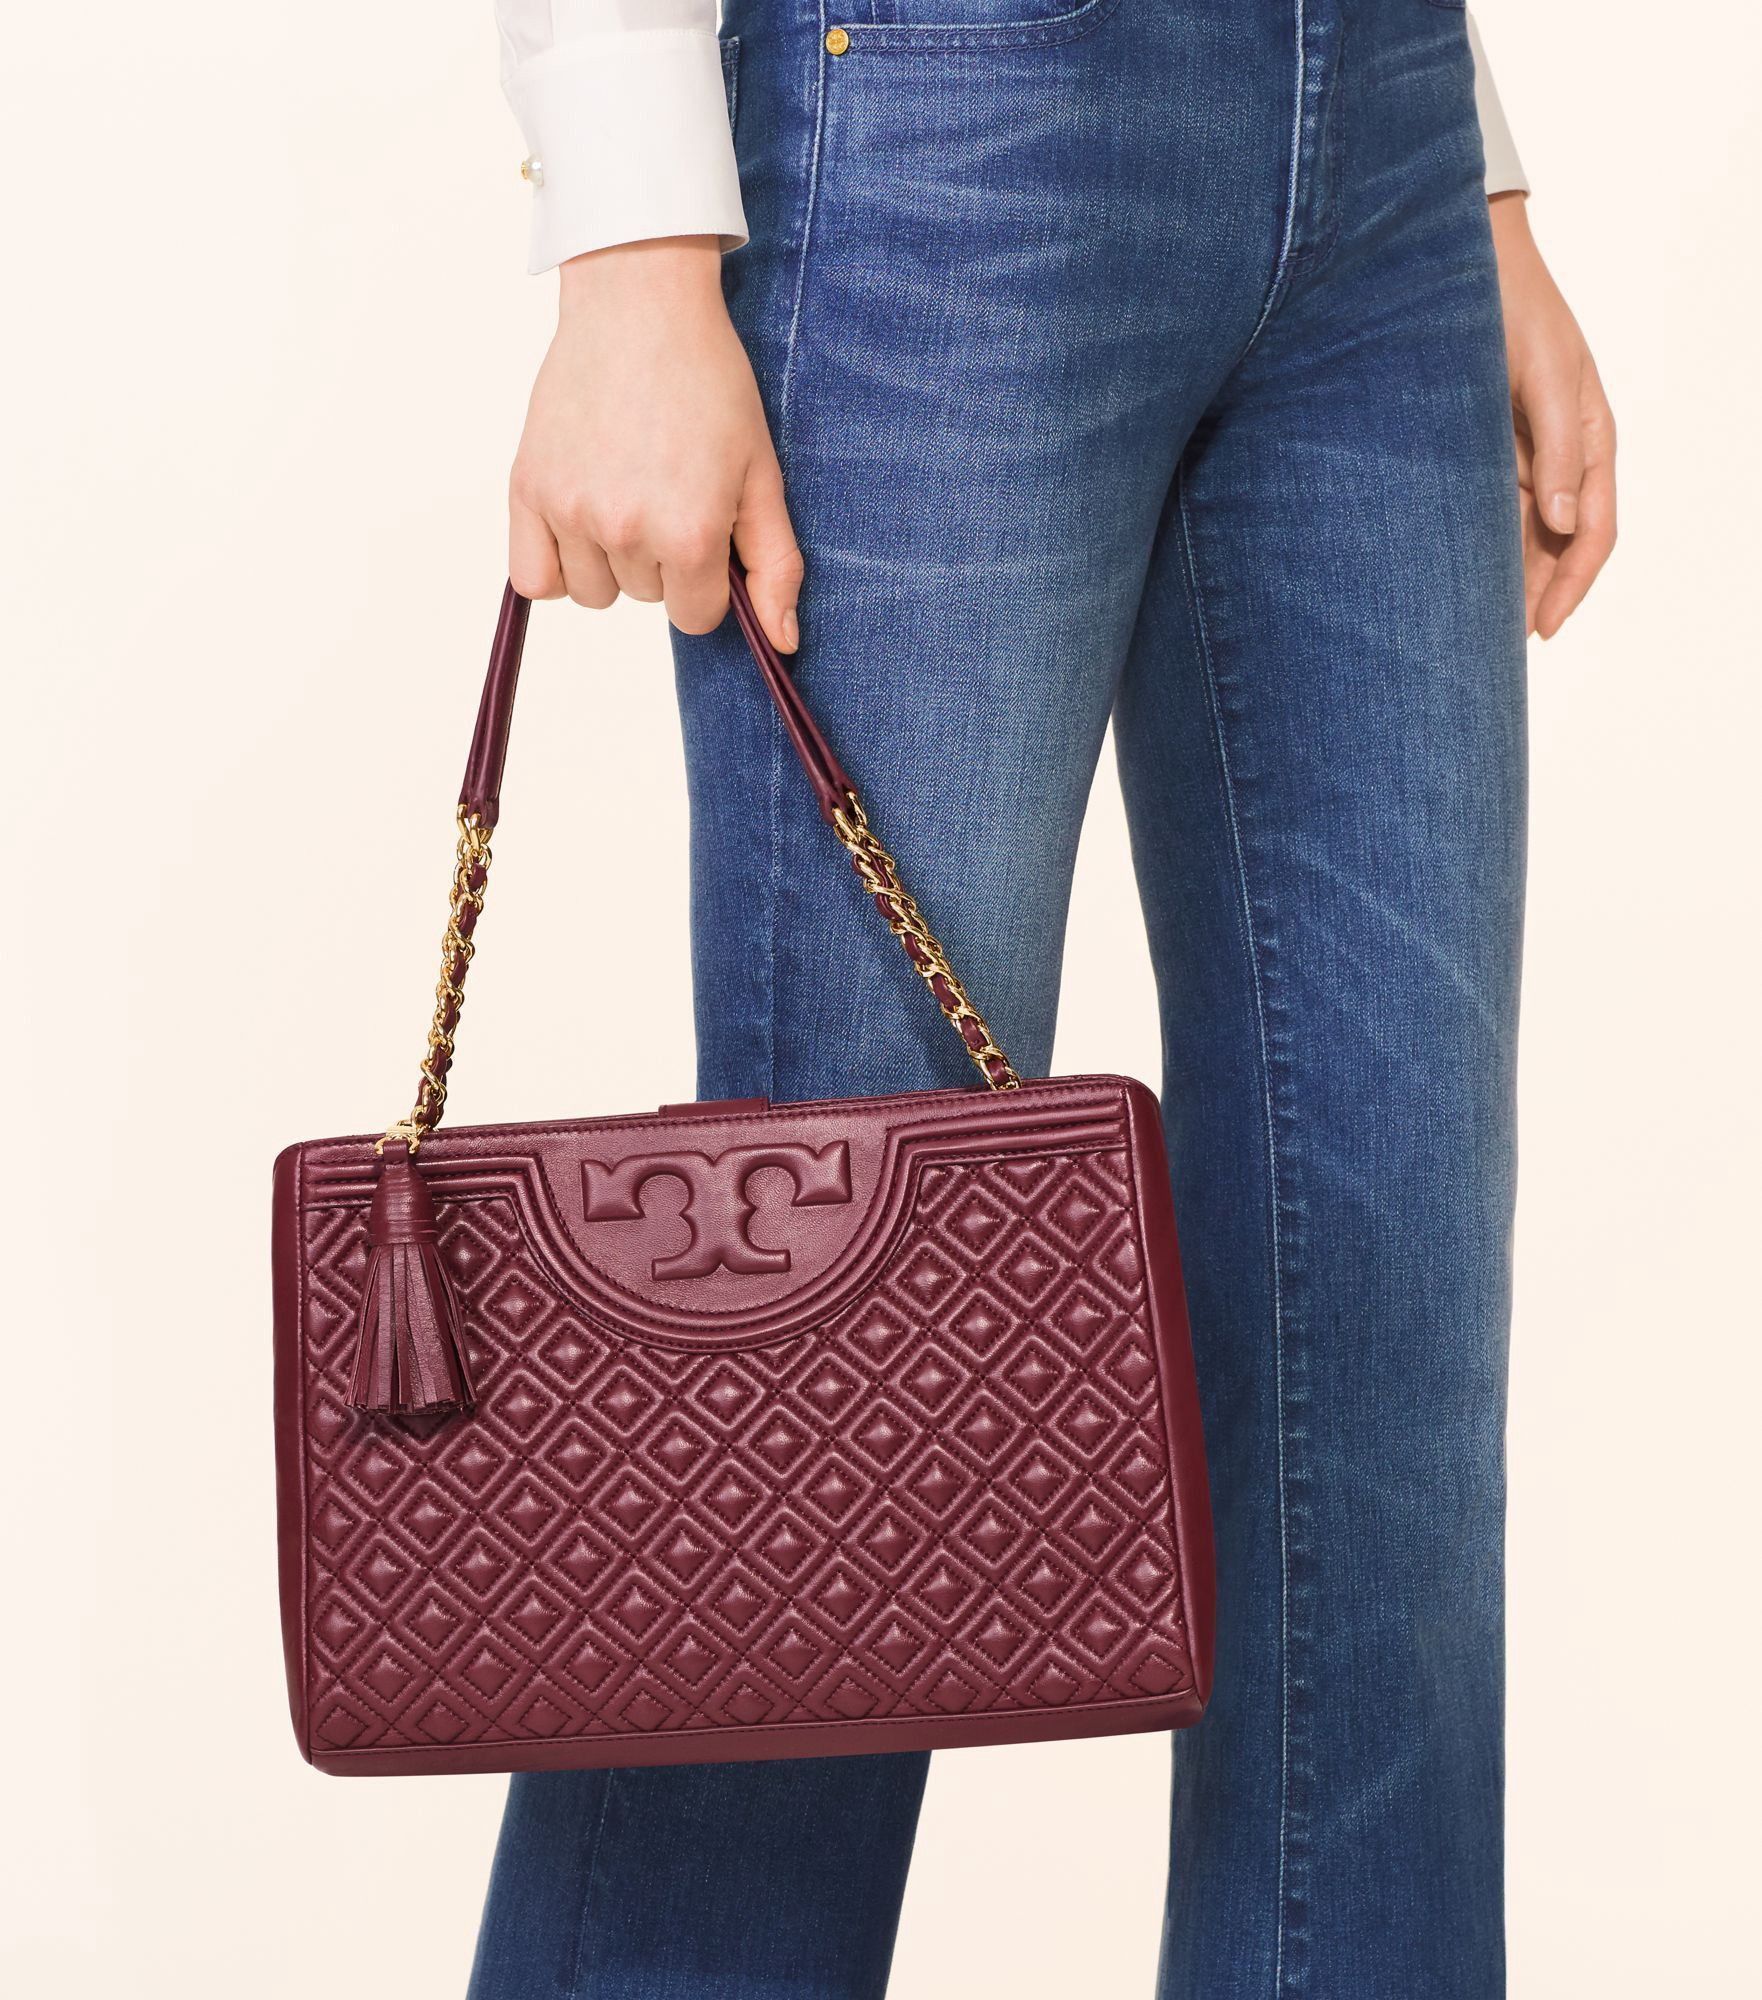 be4844eeac8d TORY BURCH FLEMING OPEN SHOULDER BAG.  toryburch  bags  shoulder bags   leather